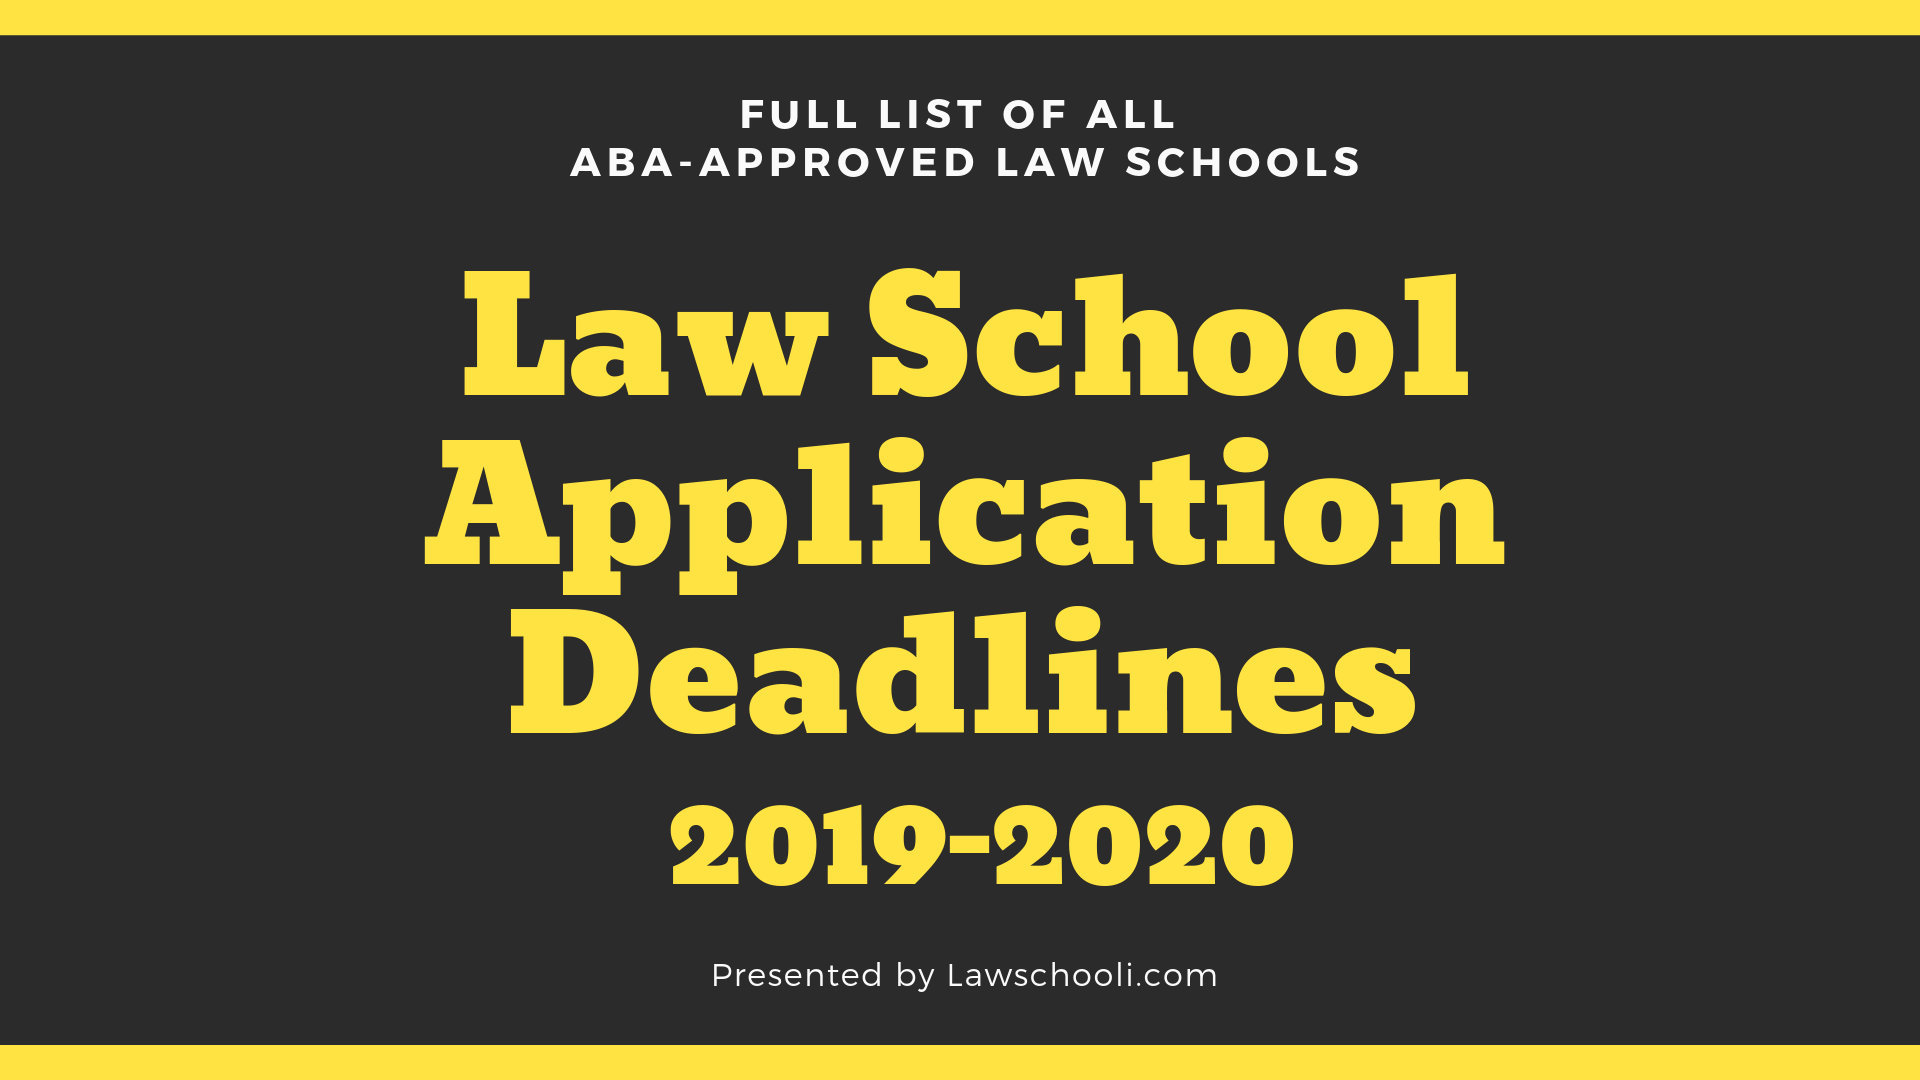 Cuny Spring 2020 Calendar.Law School Application Deadlines 2019 2020 Lawschooli